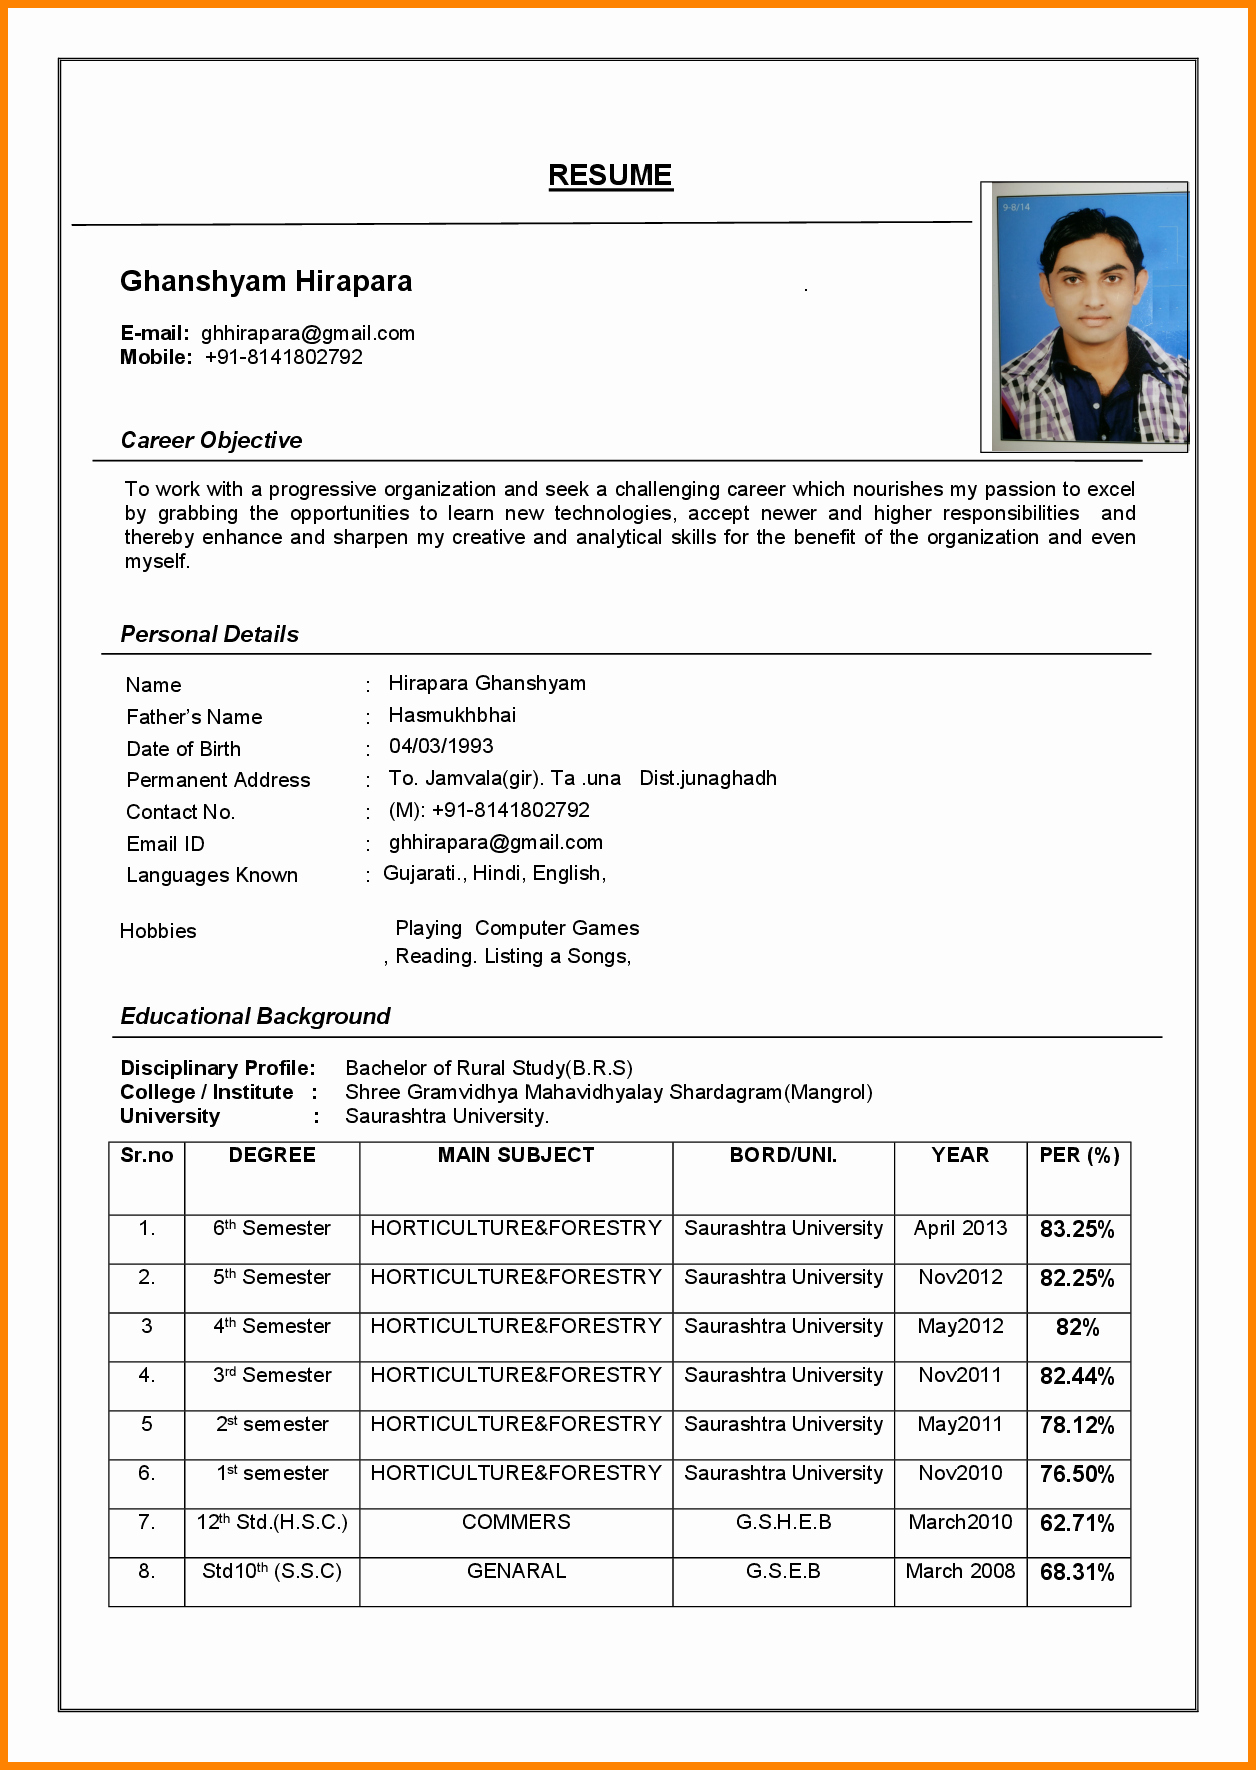 Cv format Samples In Word Elegant 4 Latest Cv format Sample